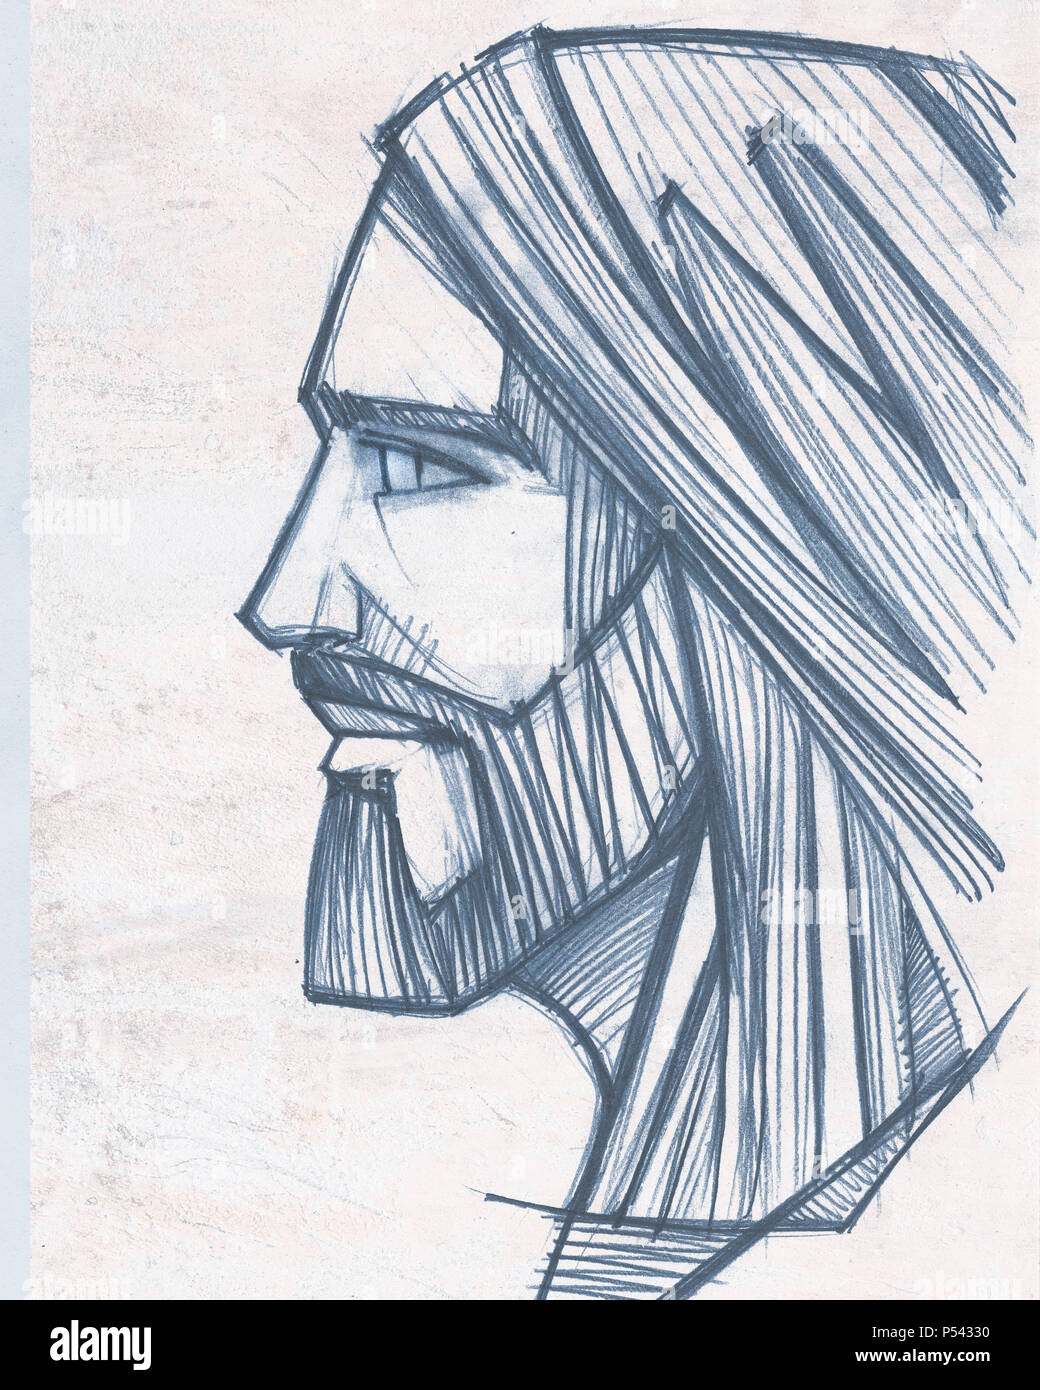 Hand drawn pencil illustration or drawing of jesus christ face stock image